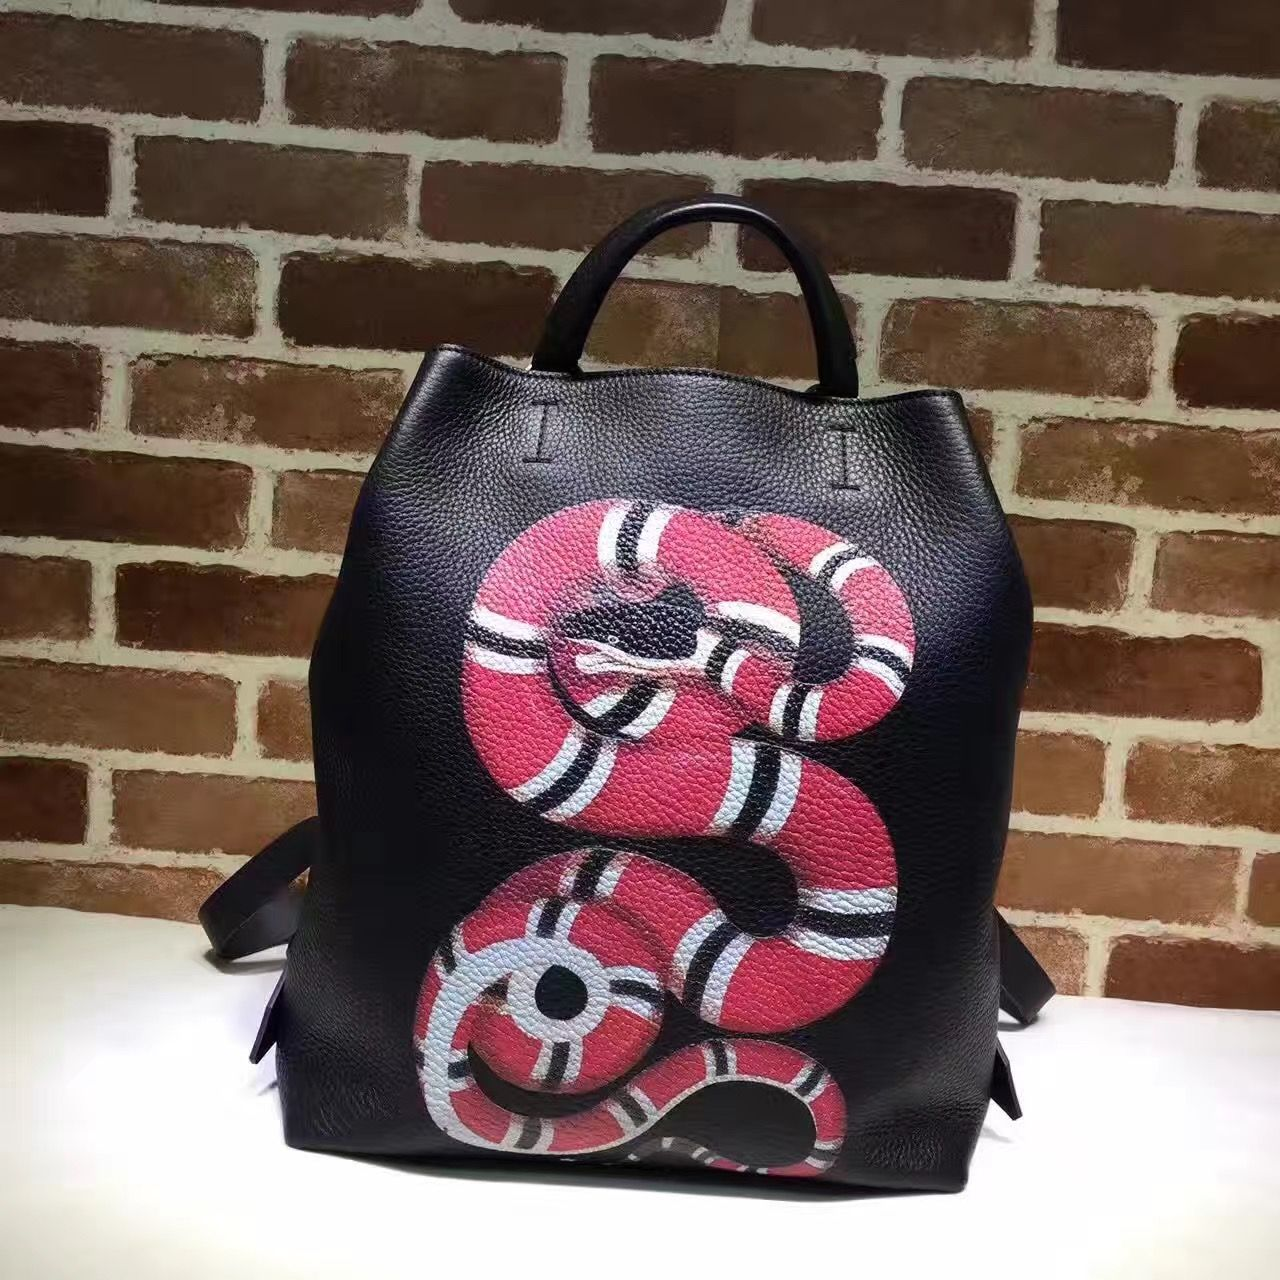 5c93661db252 Gucci Snake Print Leather Backpack 451000 Black 2016